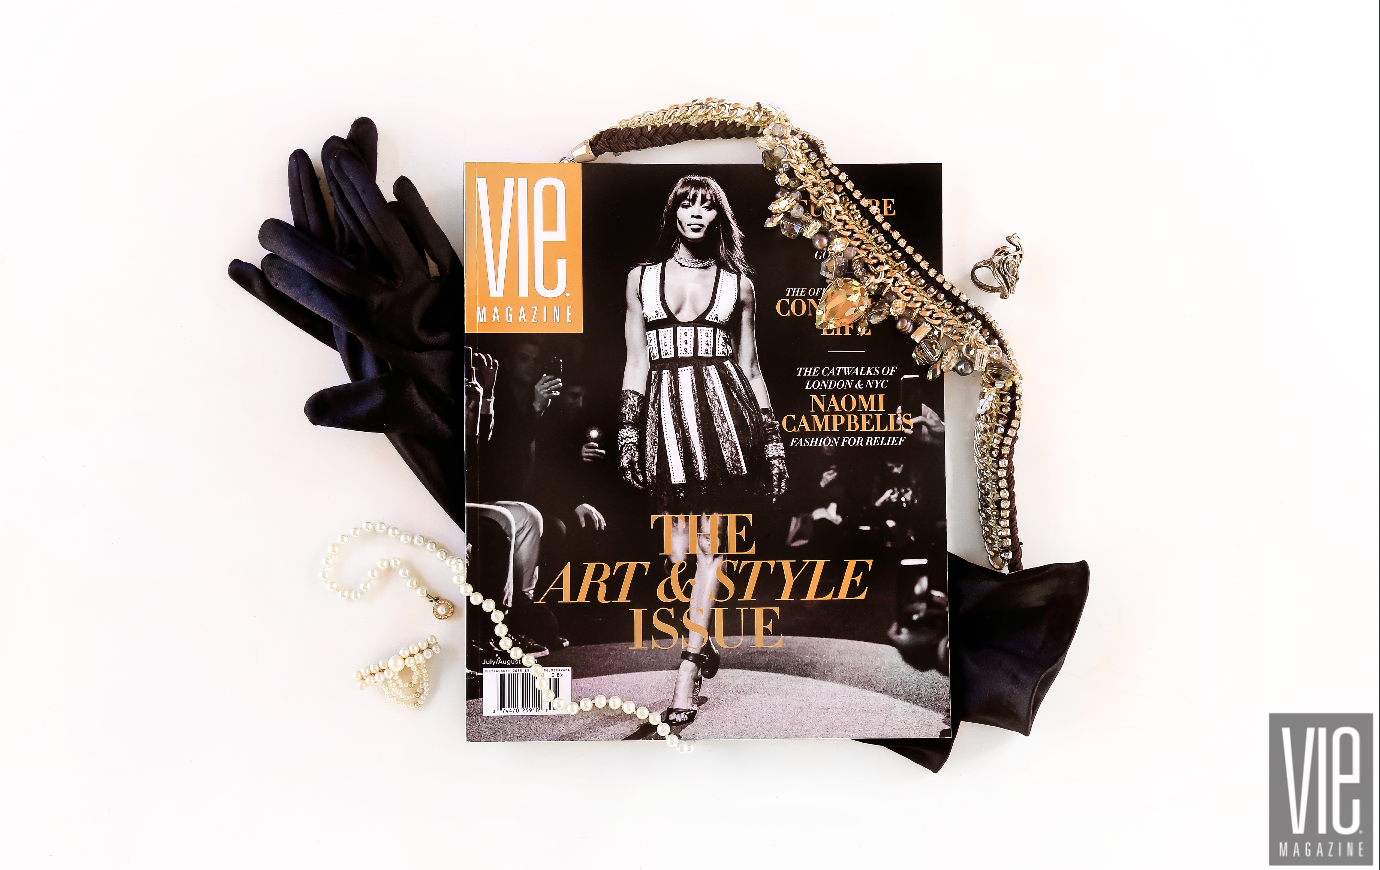 Flatlay photography technique of VIE Magazine by Brenna Kneiss